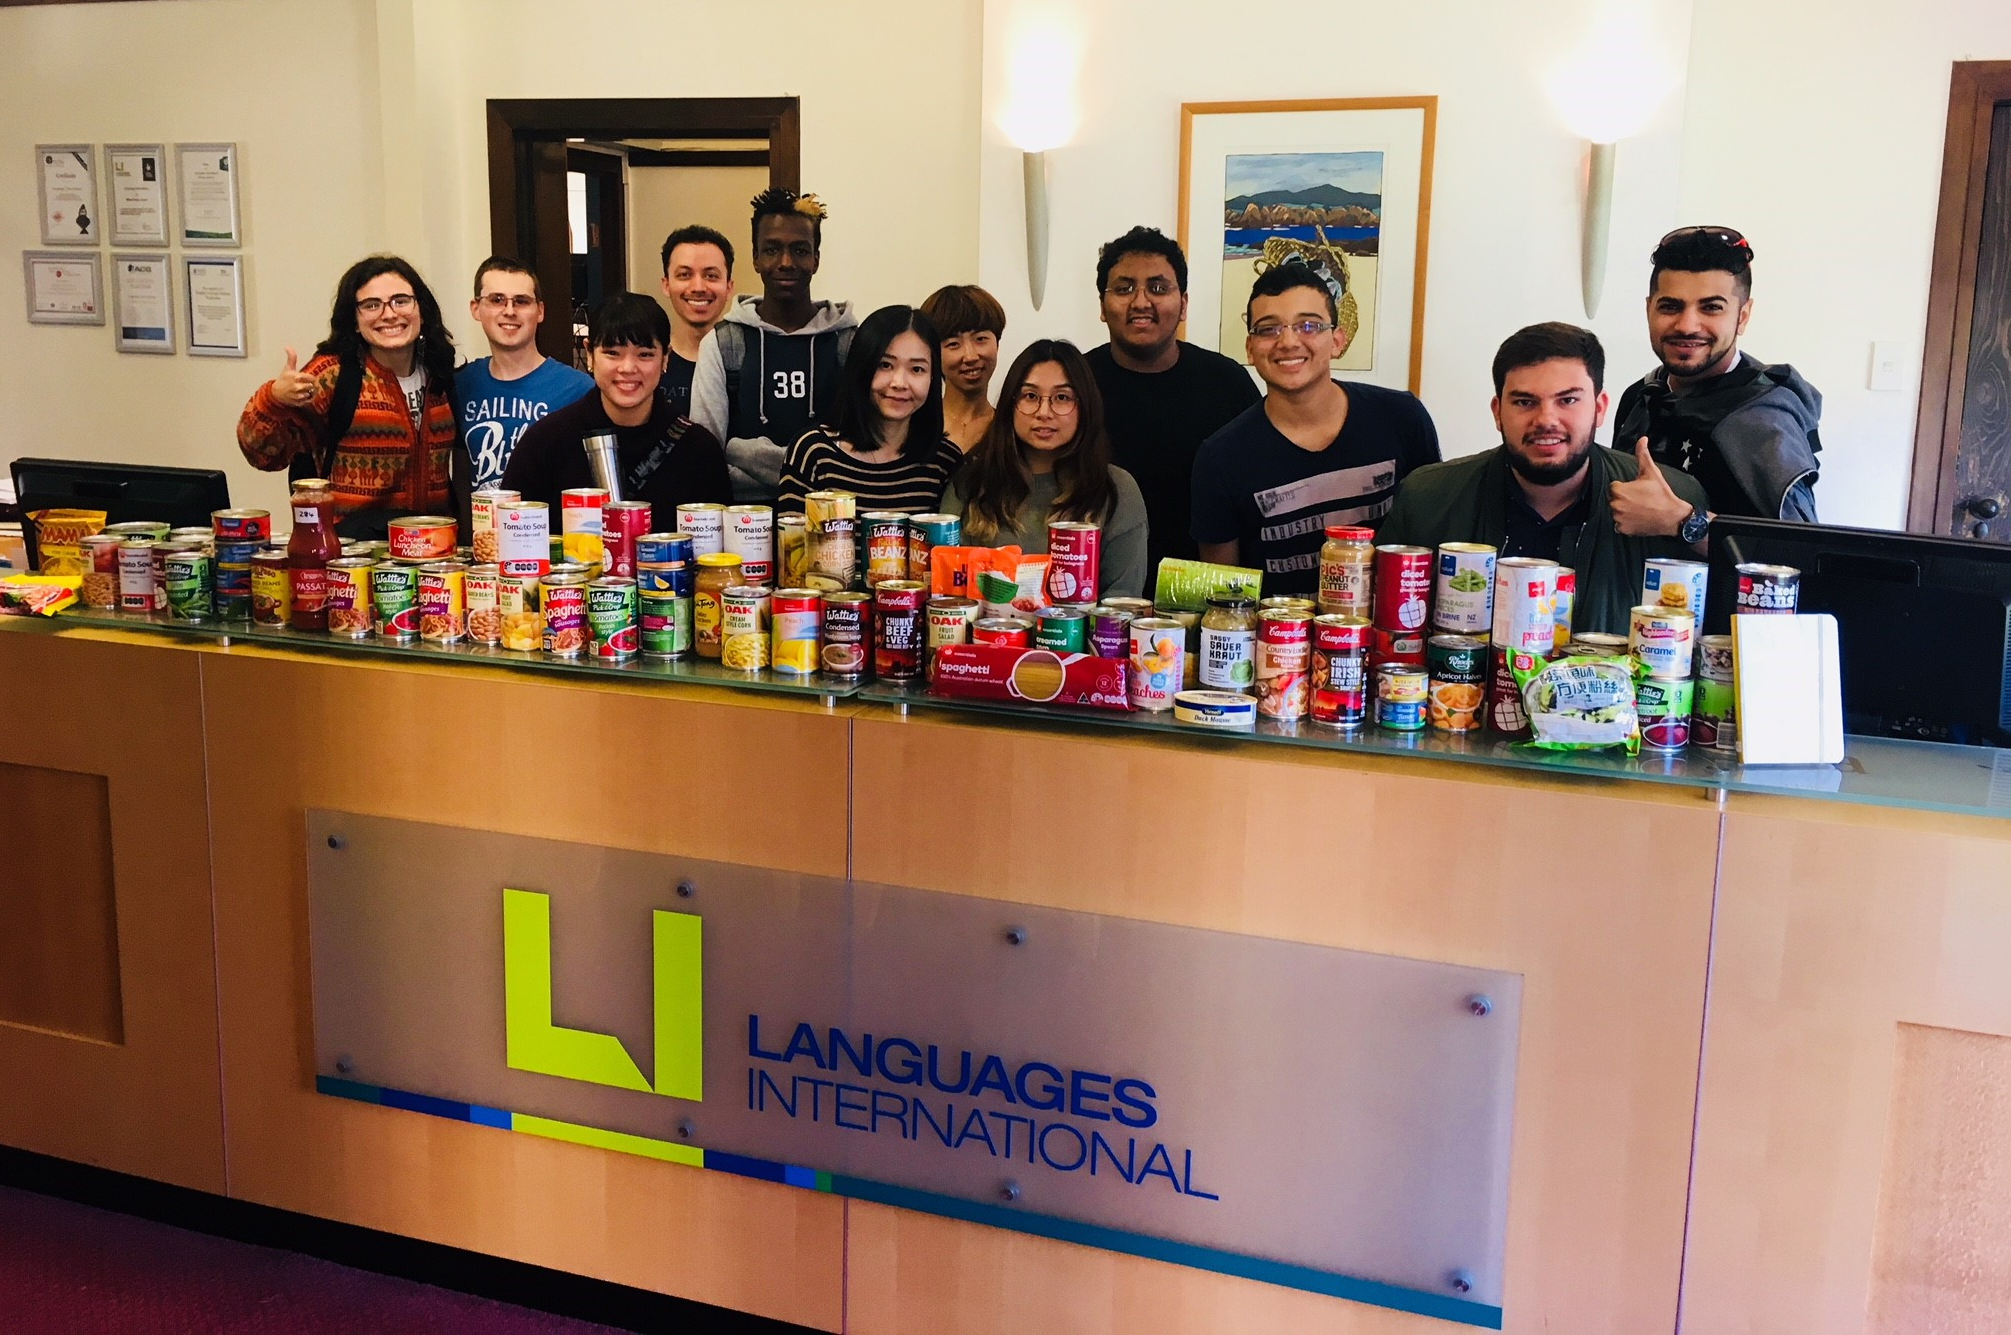 Languages International students and staff donating cans to Auckland City Mission